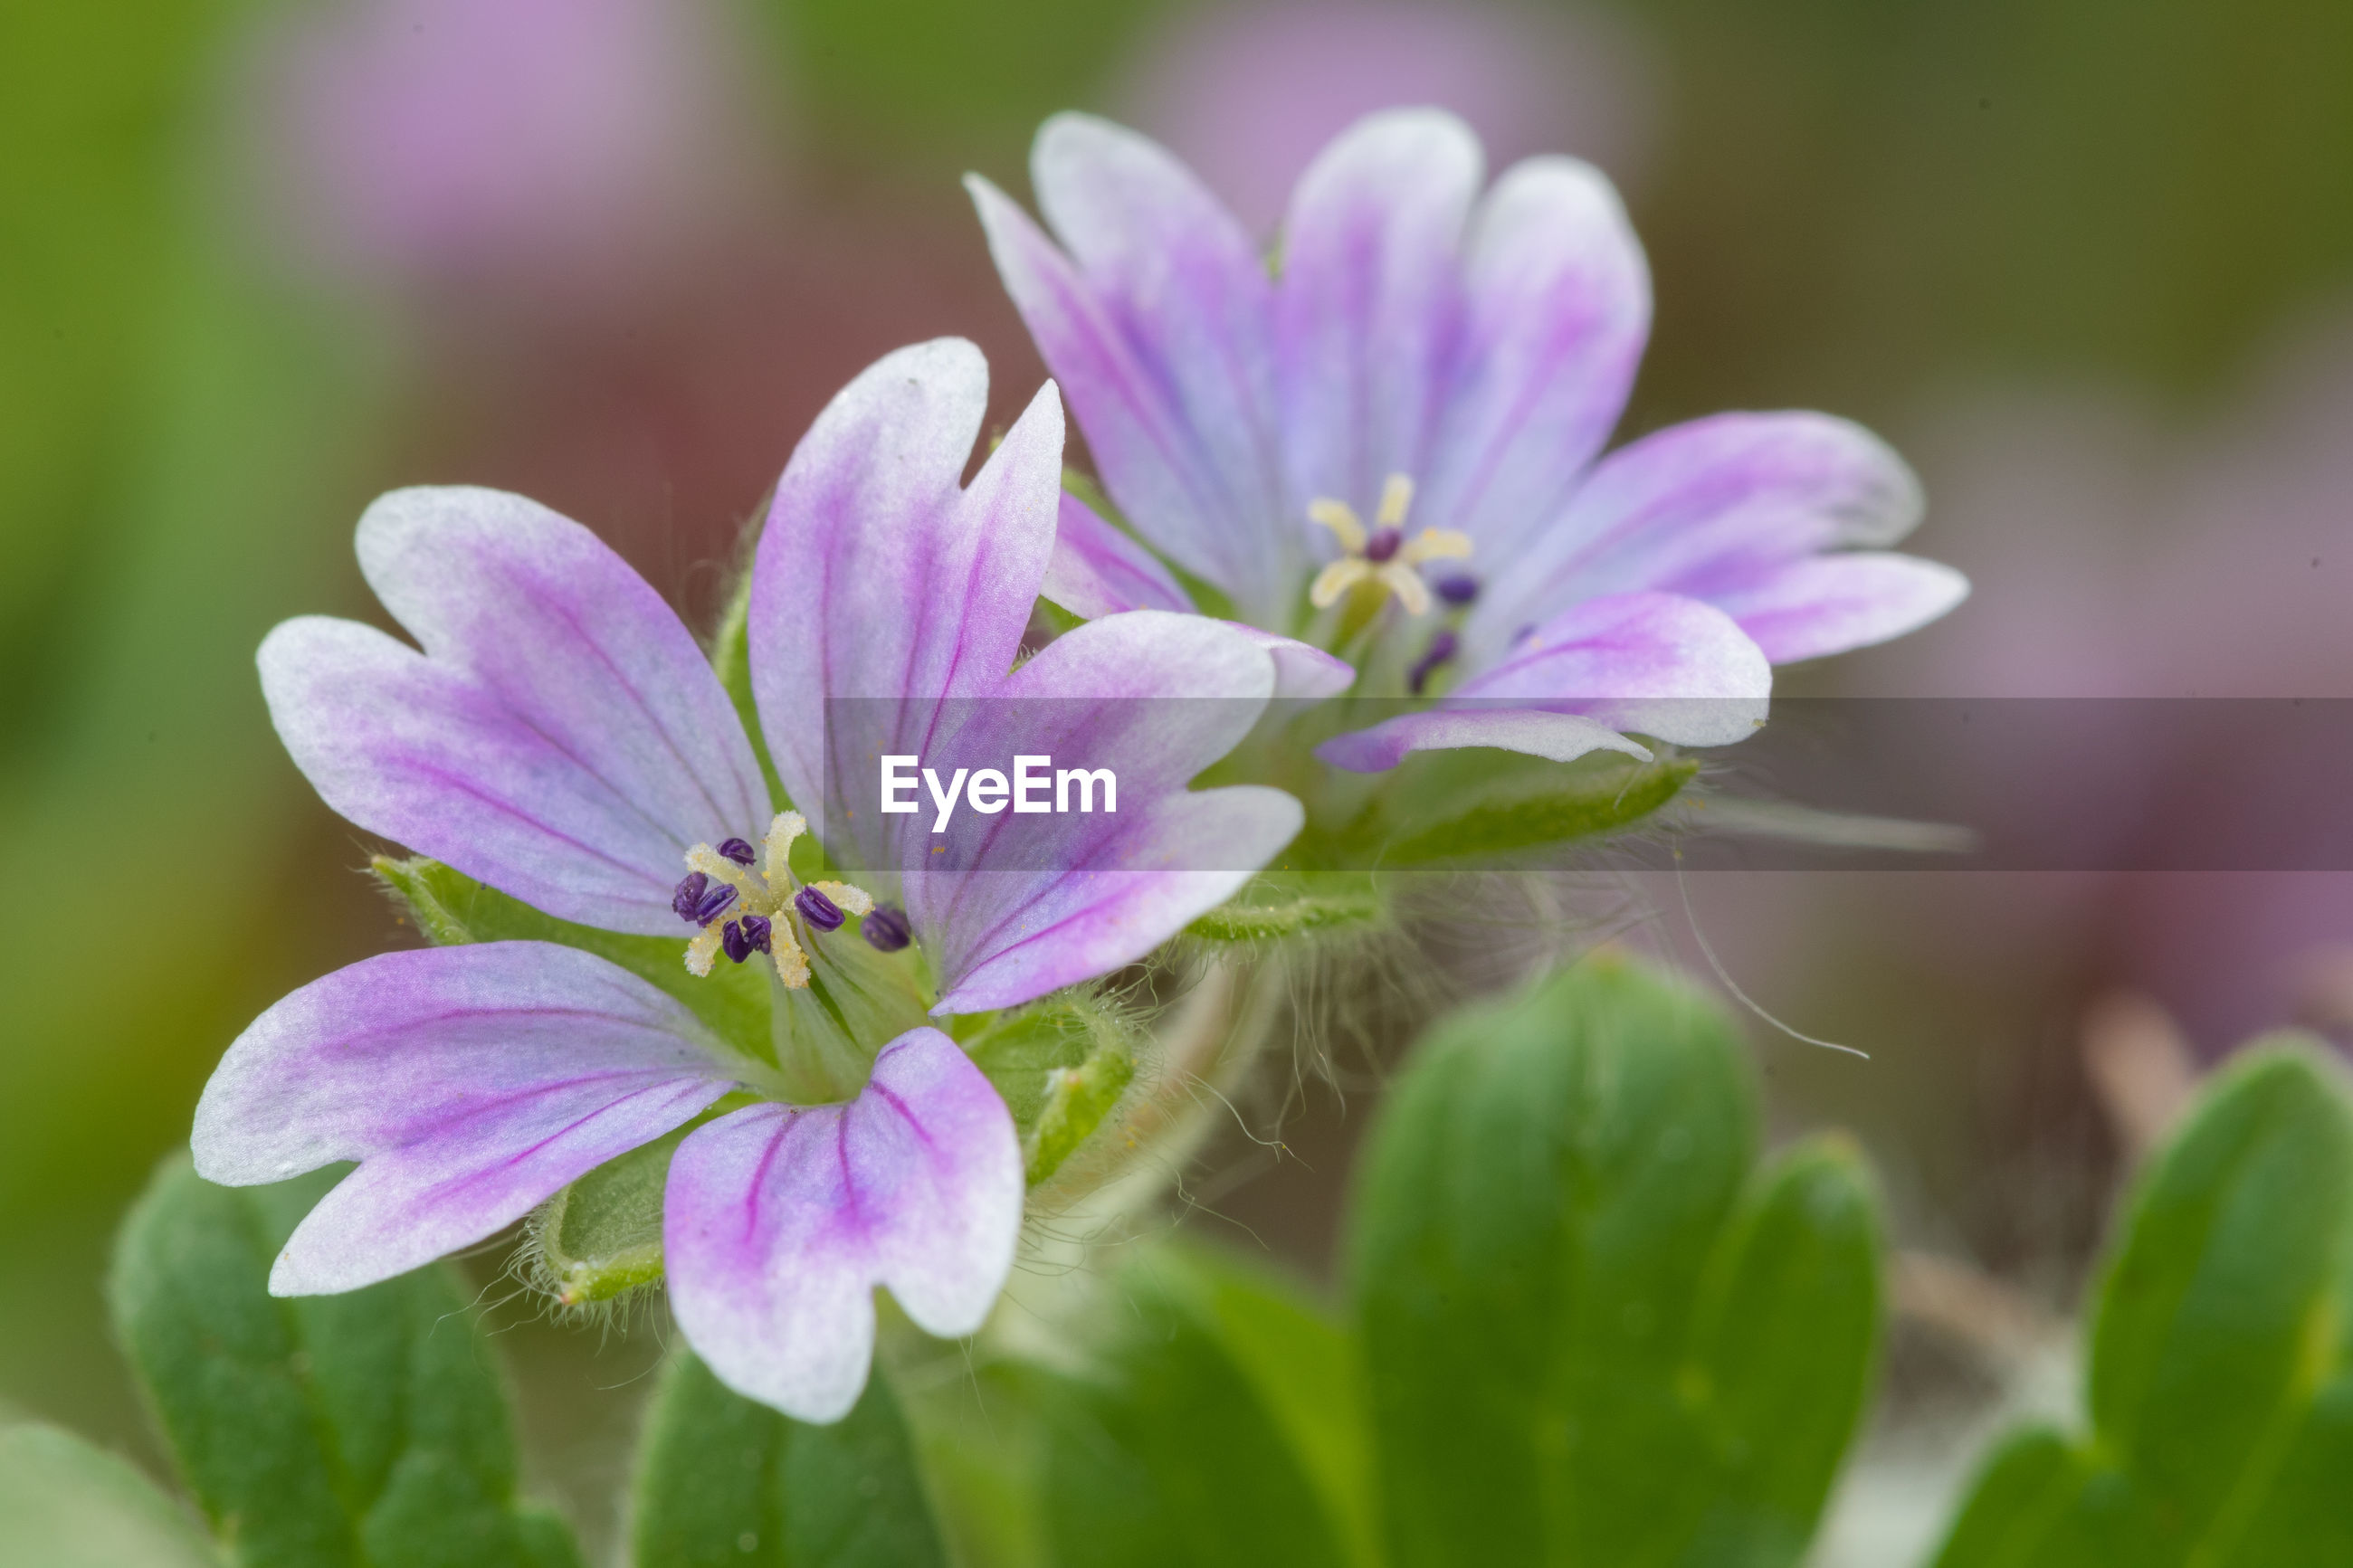 Macro shot of doves foot geranium flowers in bloom